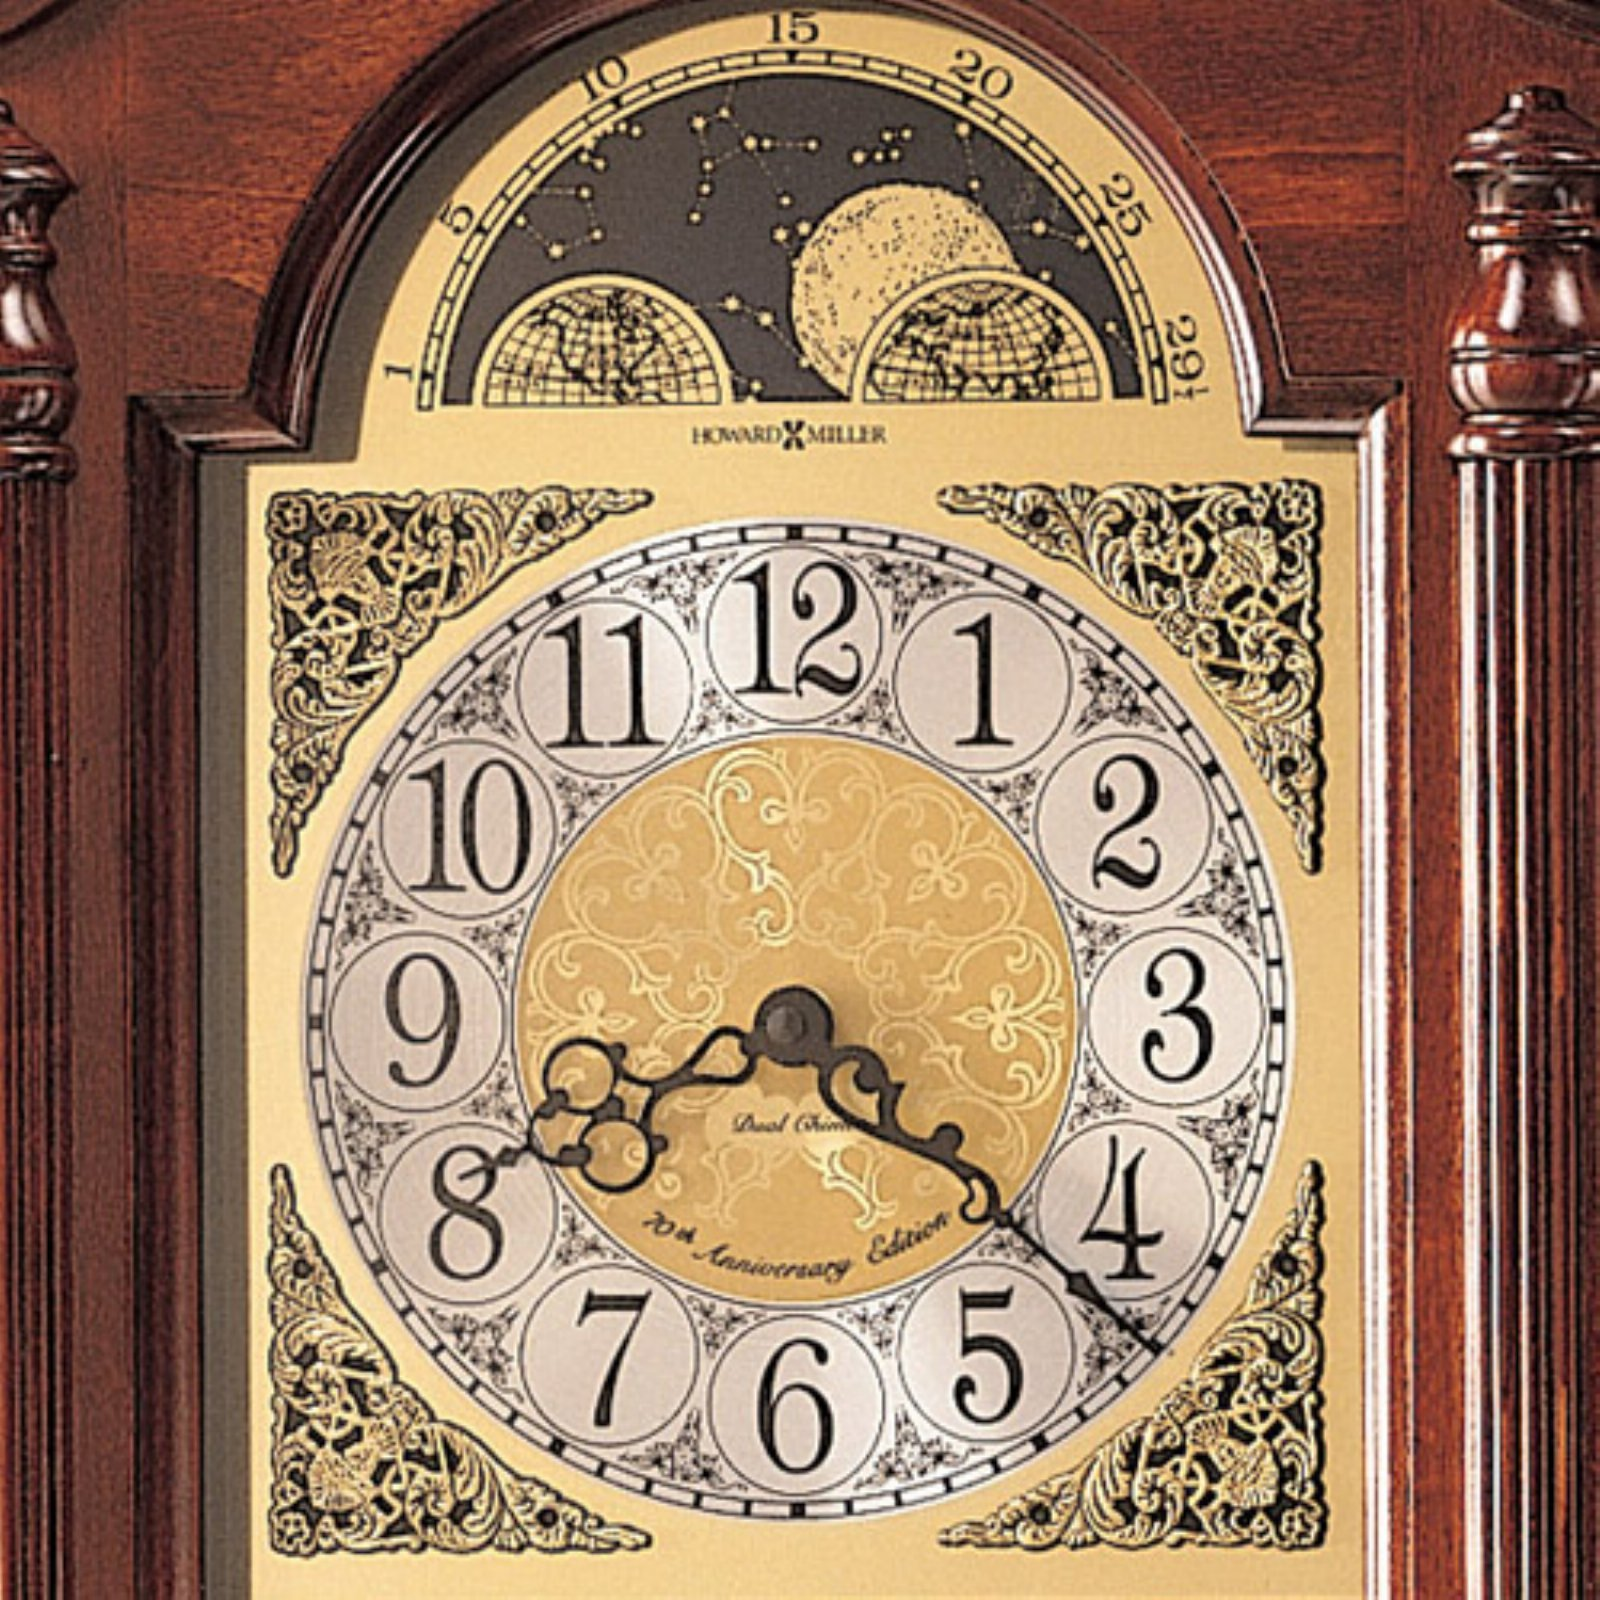 Howard Miller Fenwick Wall Clock - Walmart.com